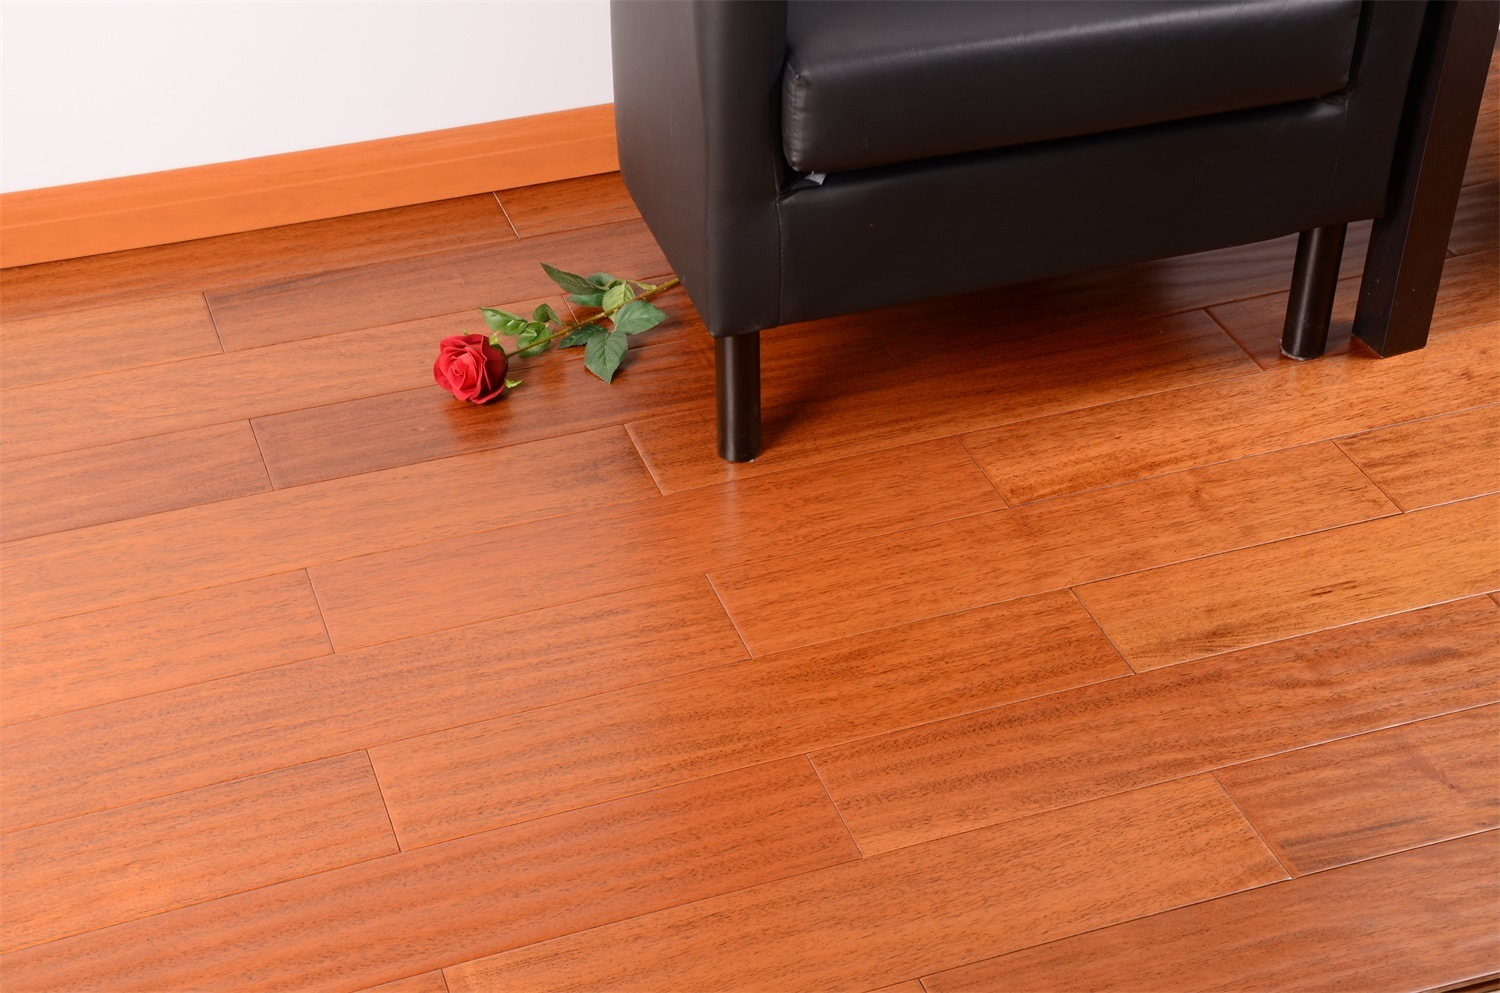 15mm Thickness Oak Solid Wood Flooring